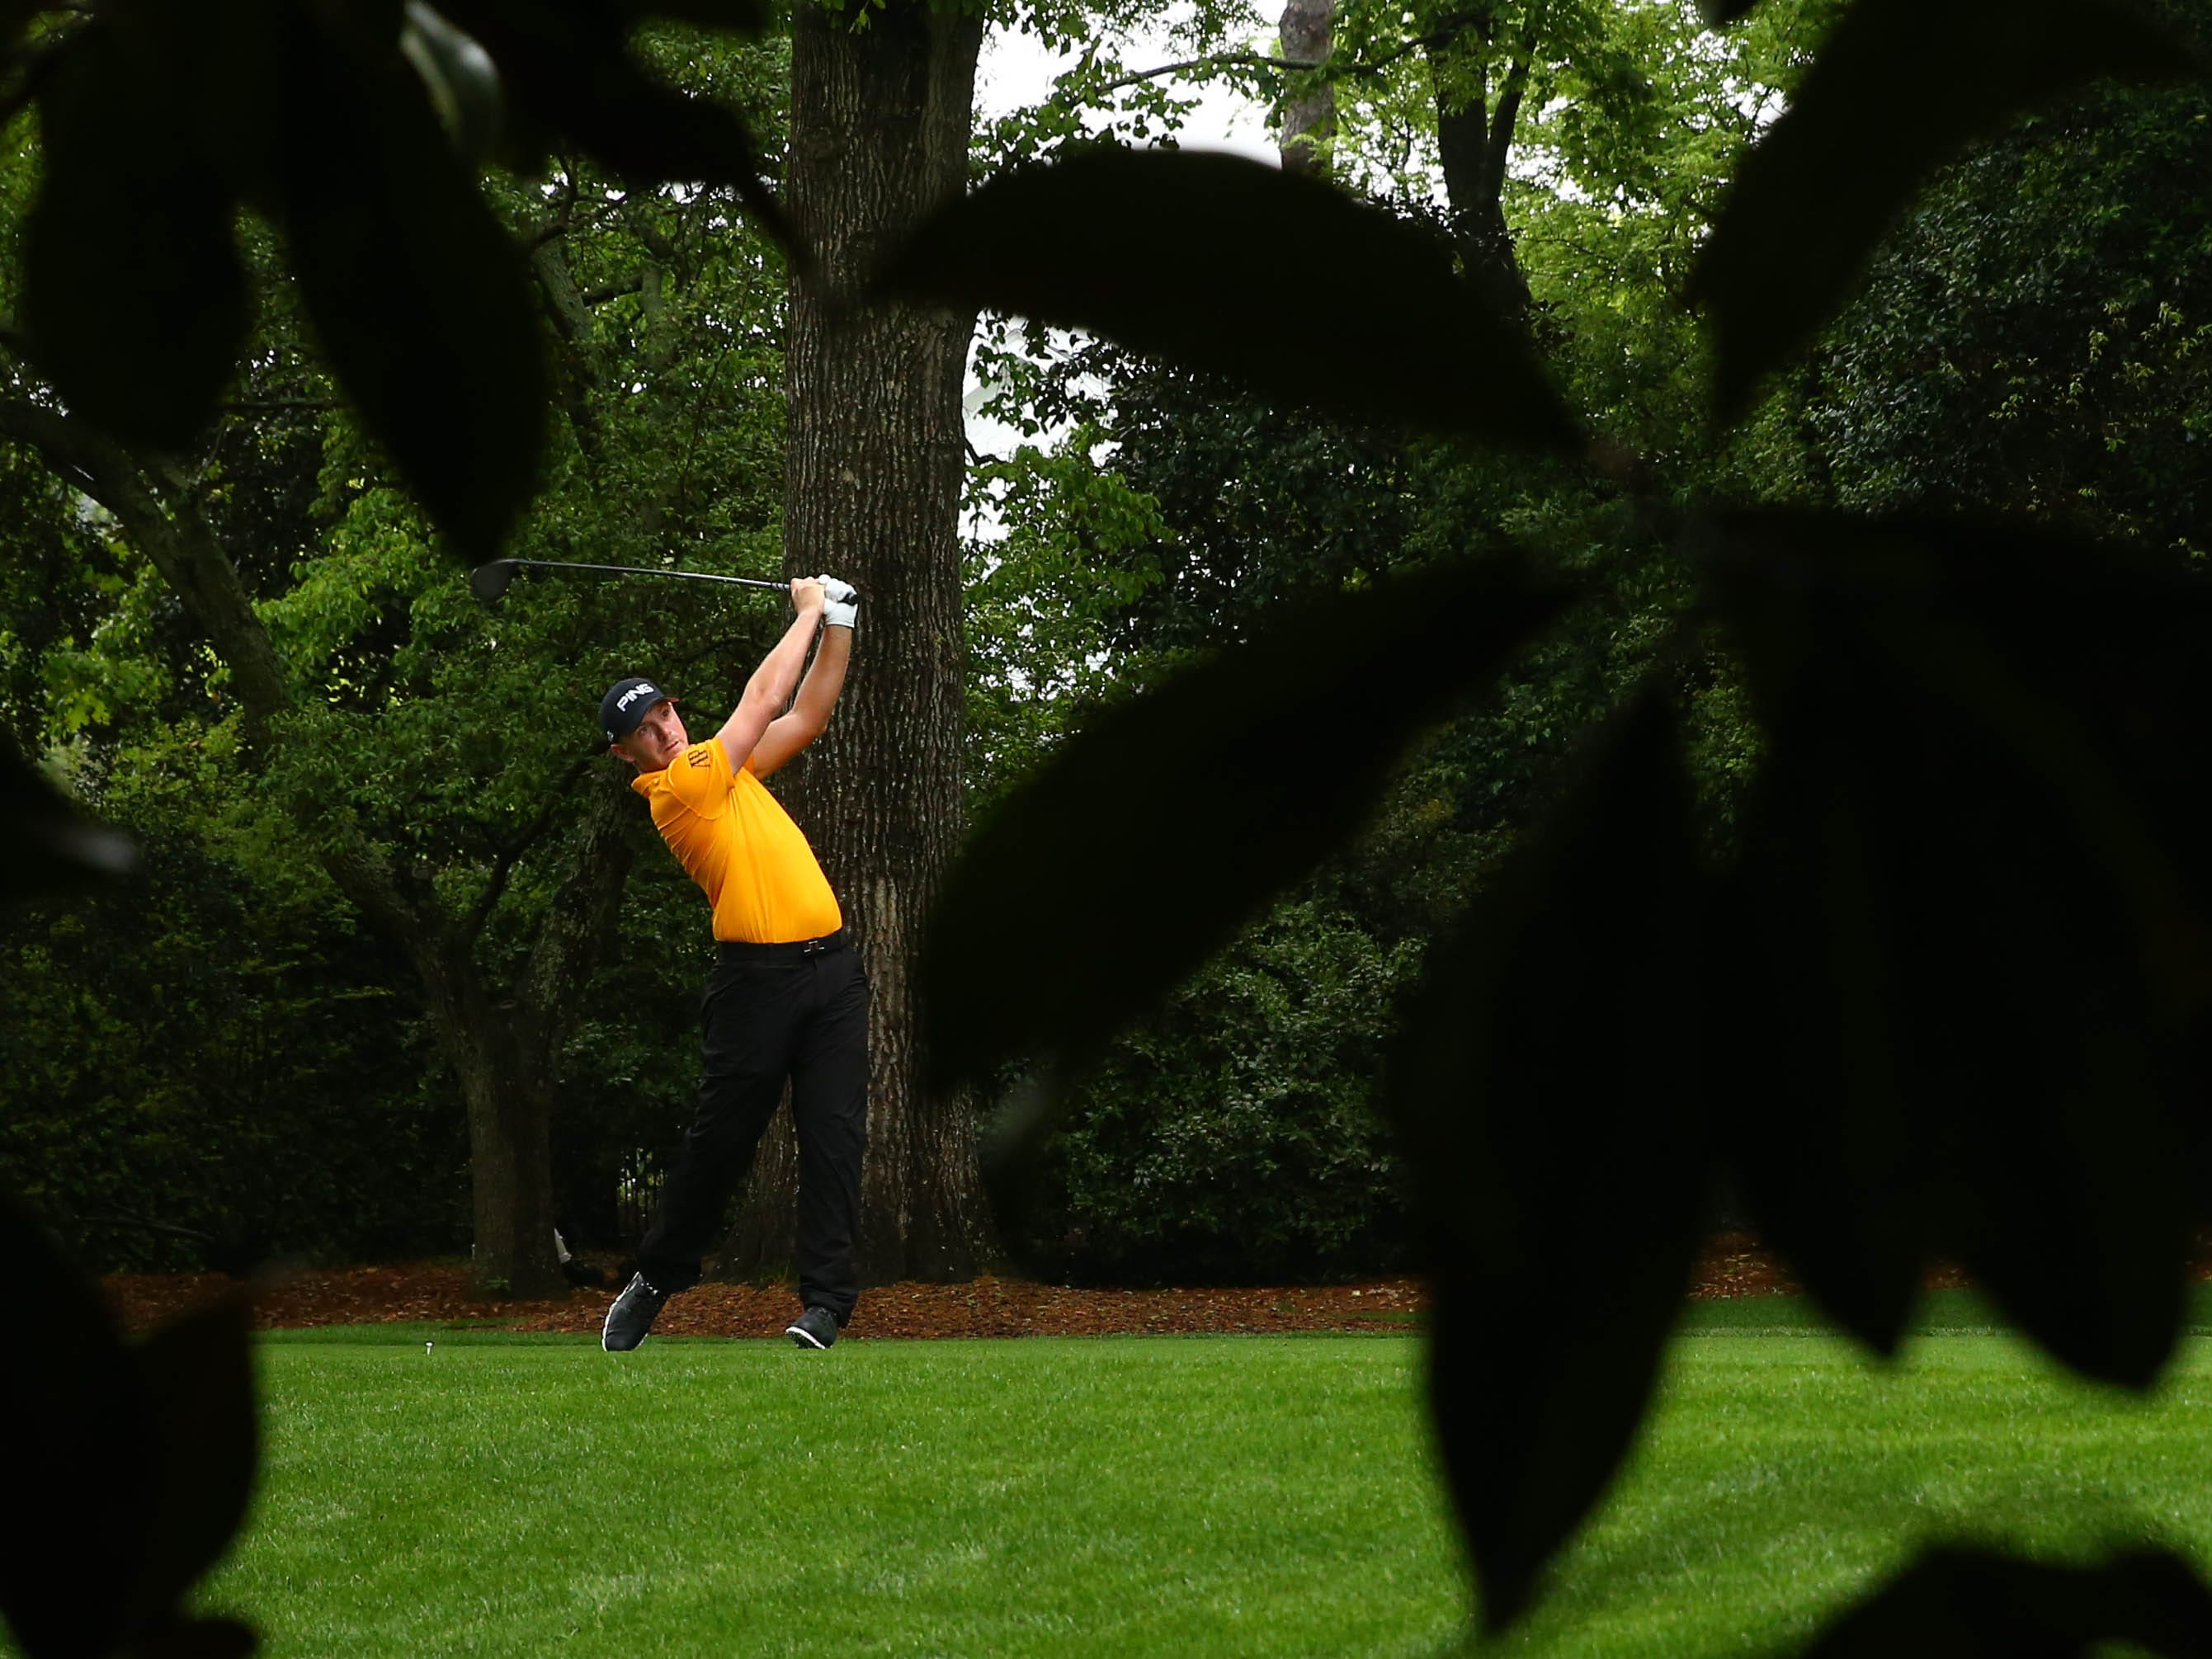 Alvaro Ortiz hits his tee shot on the second hole during the second round of the Masters.